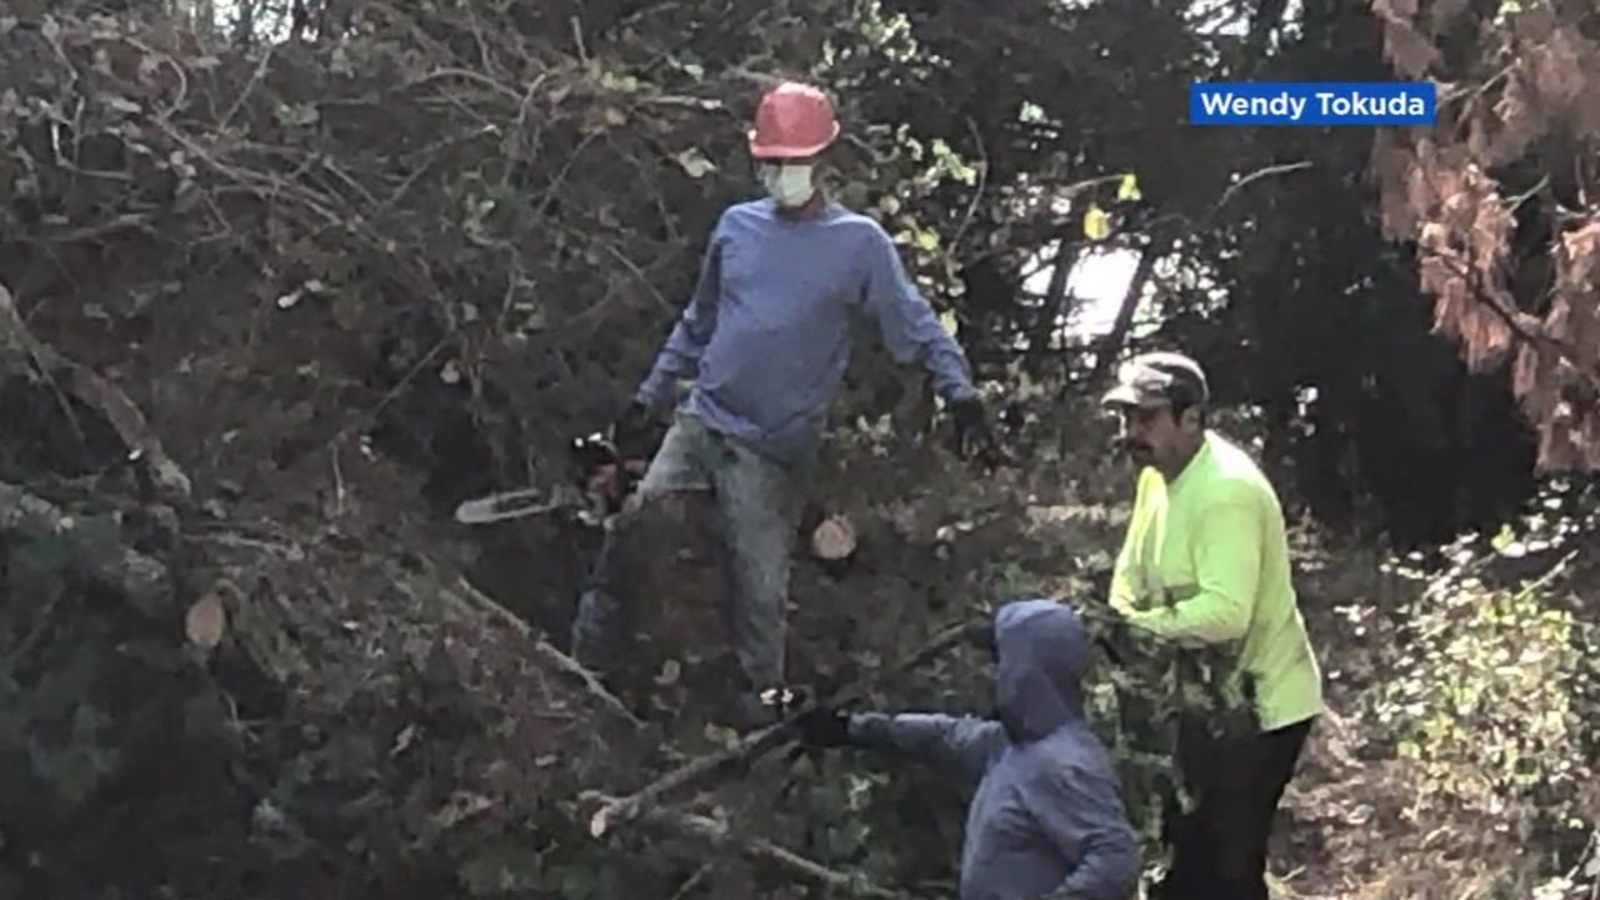 Oakland Hills residents hire company to cut down over 200 trees ahead of peak fire season